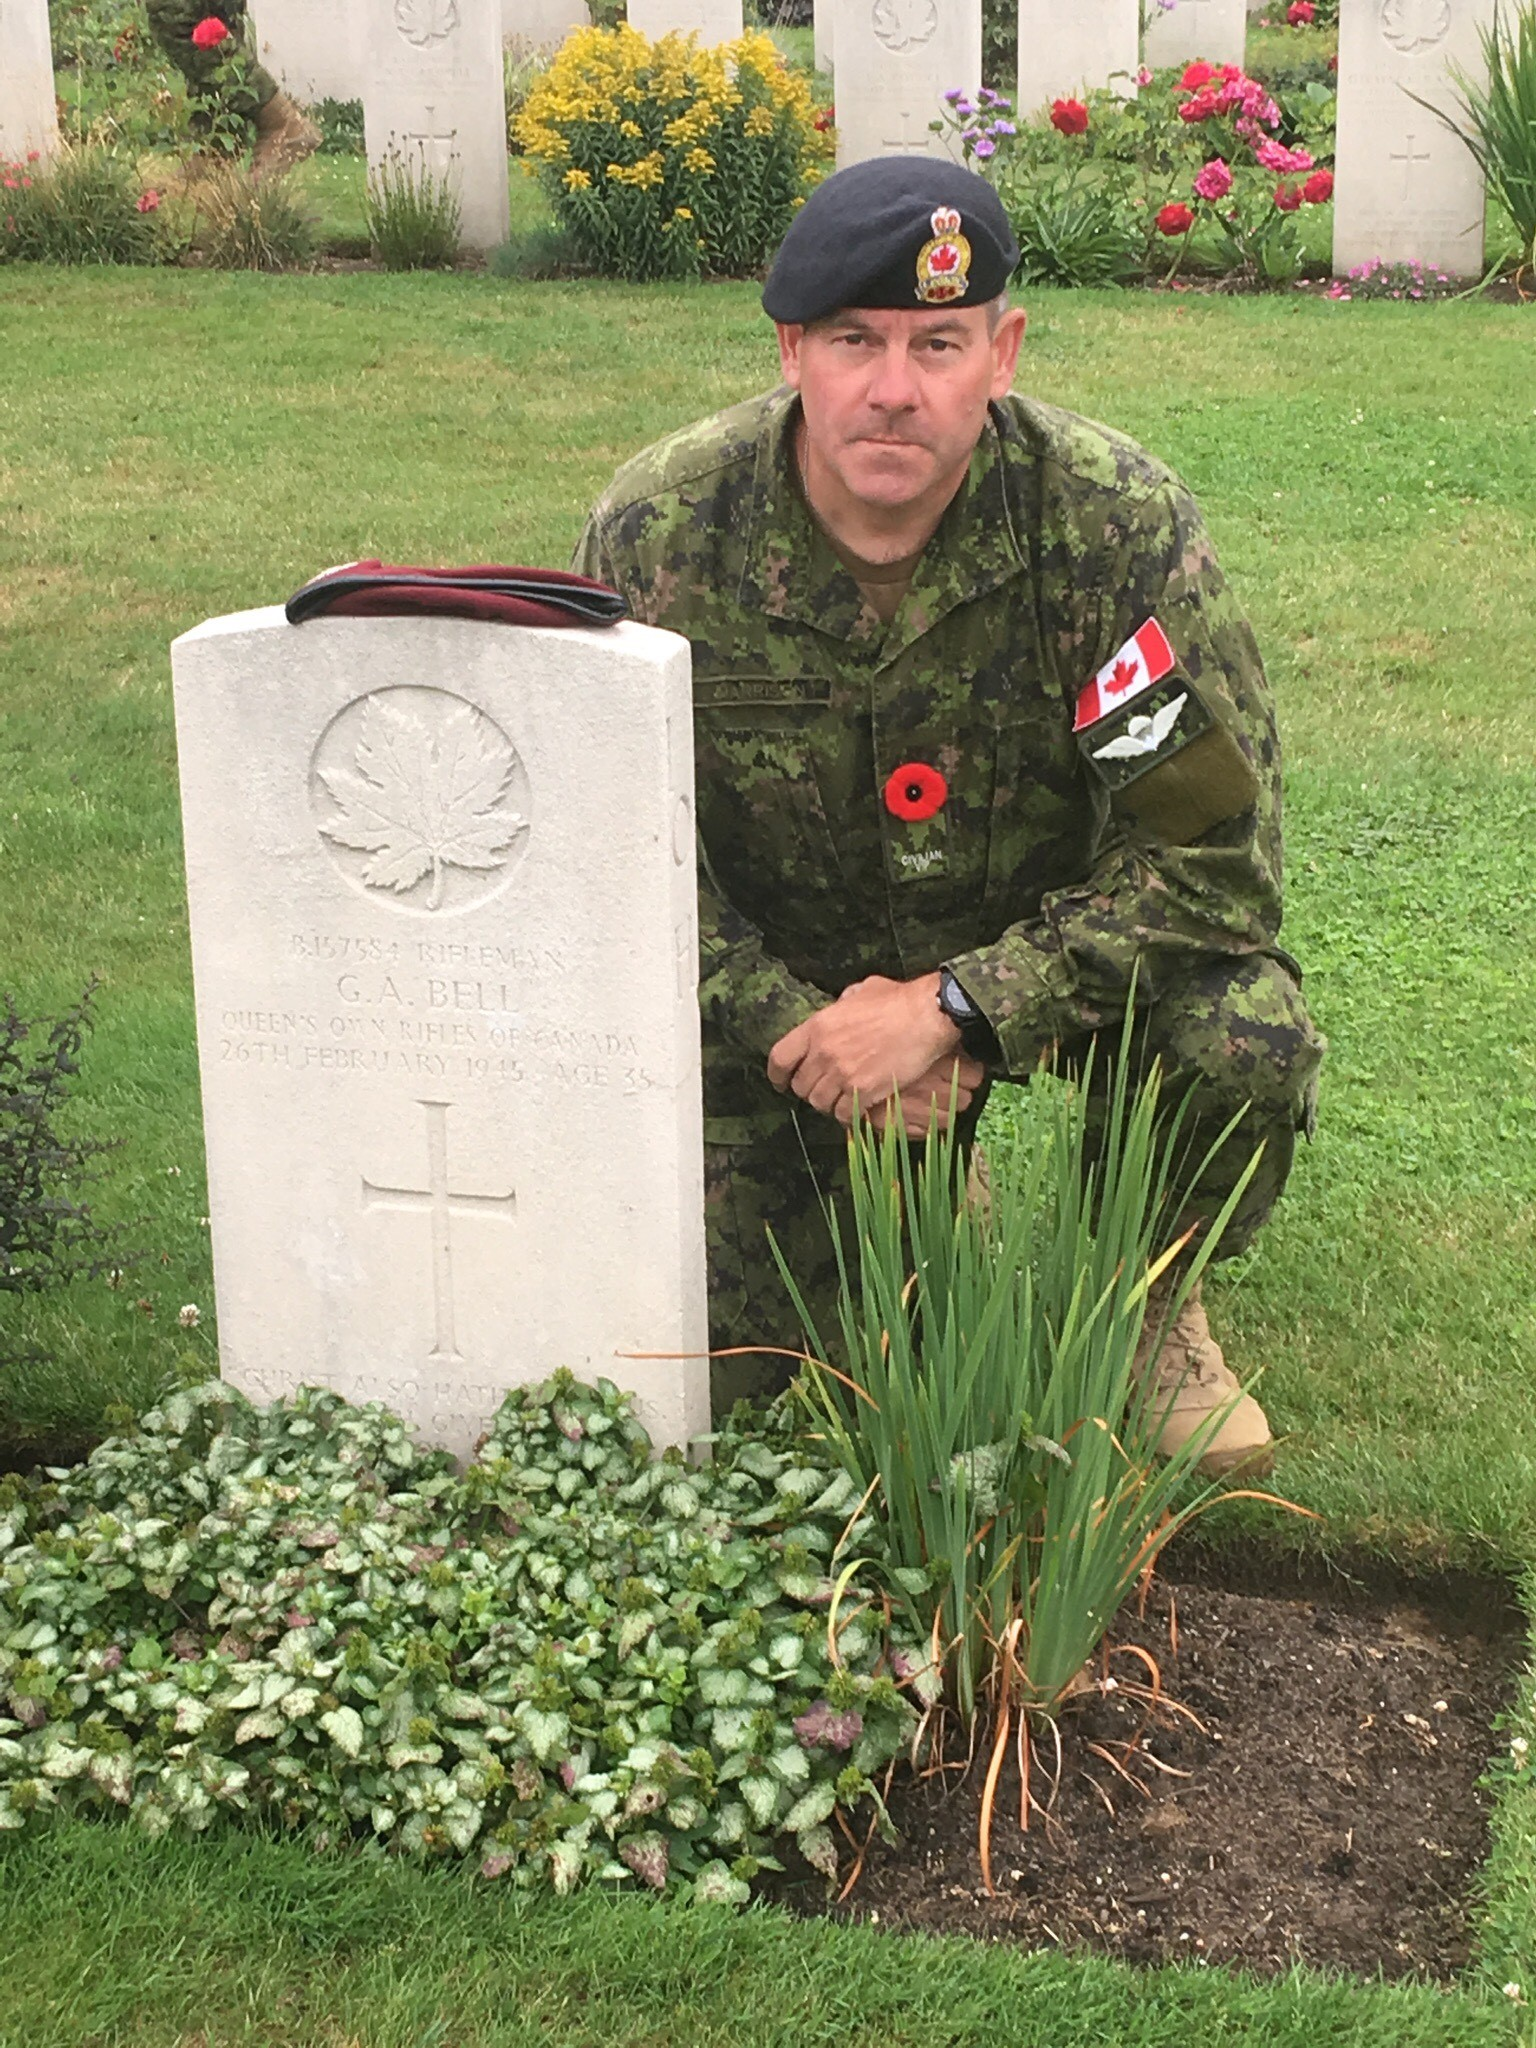 Lee Harrison poses at George Armstron Bell's grave stone. Lee's QOR Beret is on top of the stone for the photo so he has his head dress too.